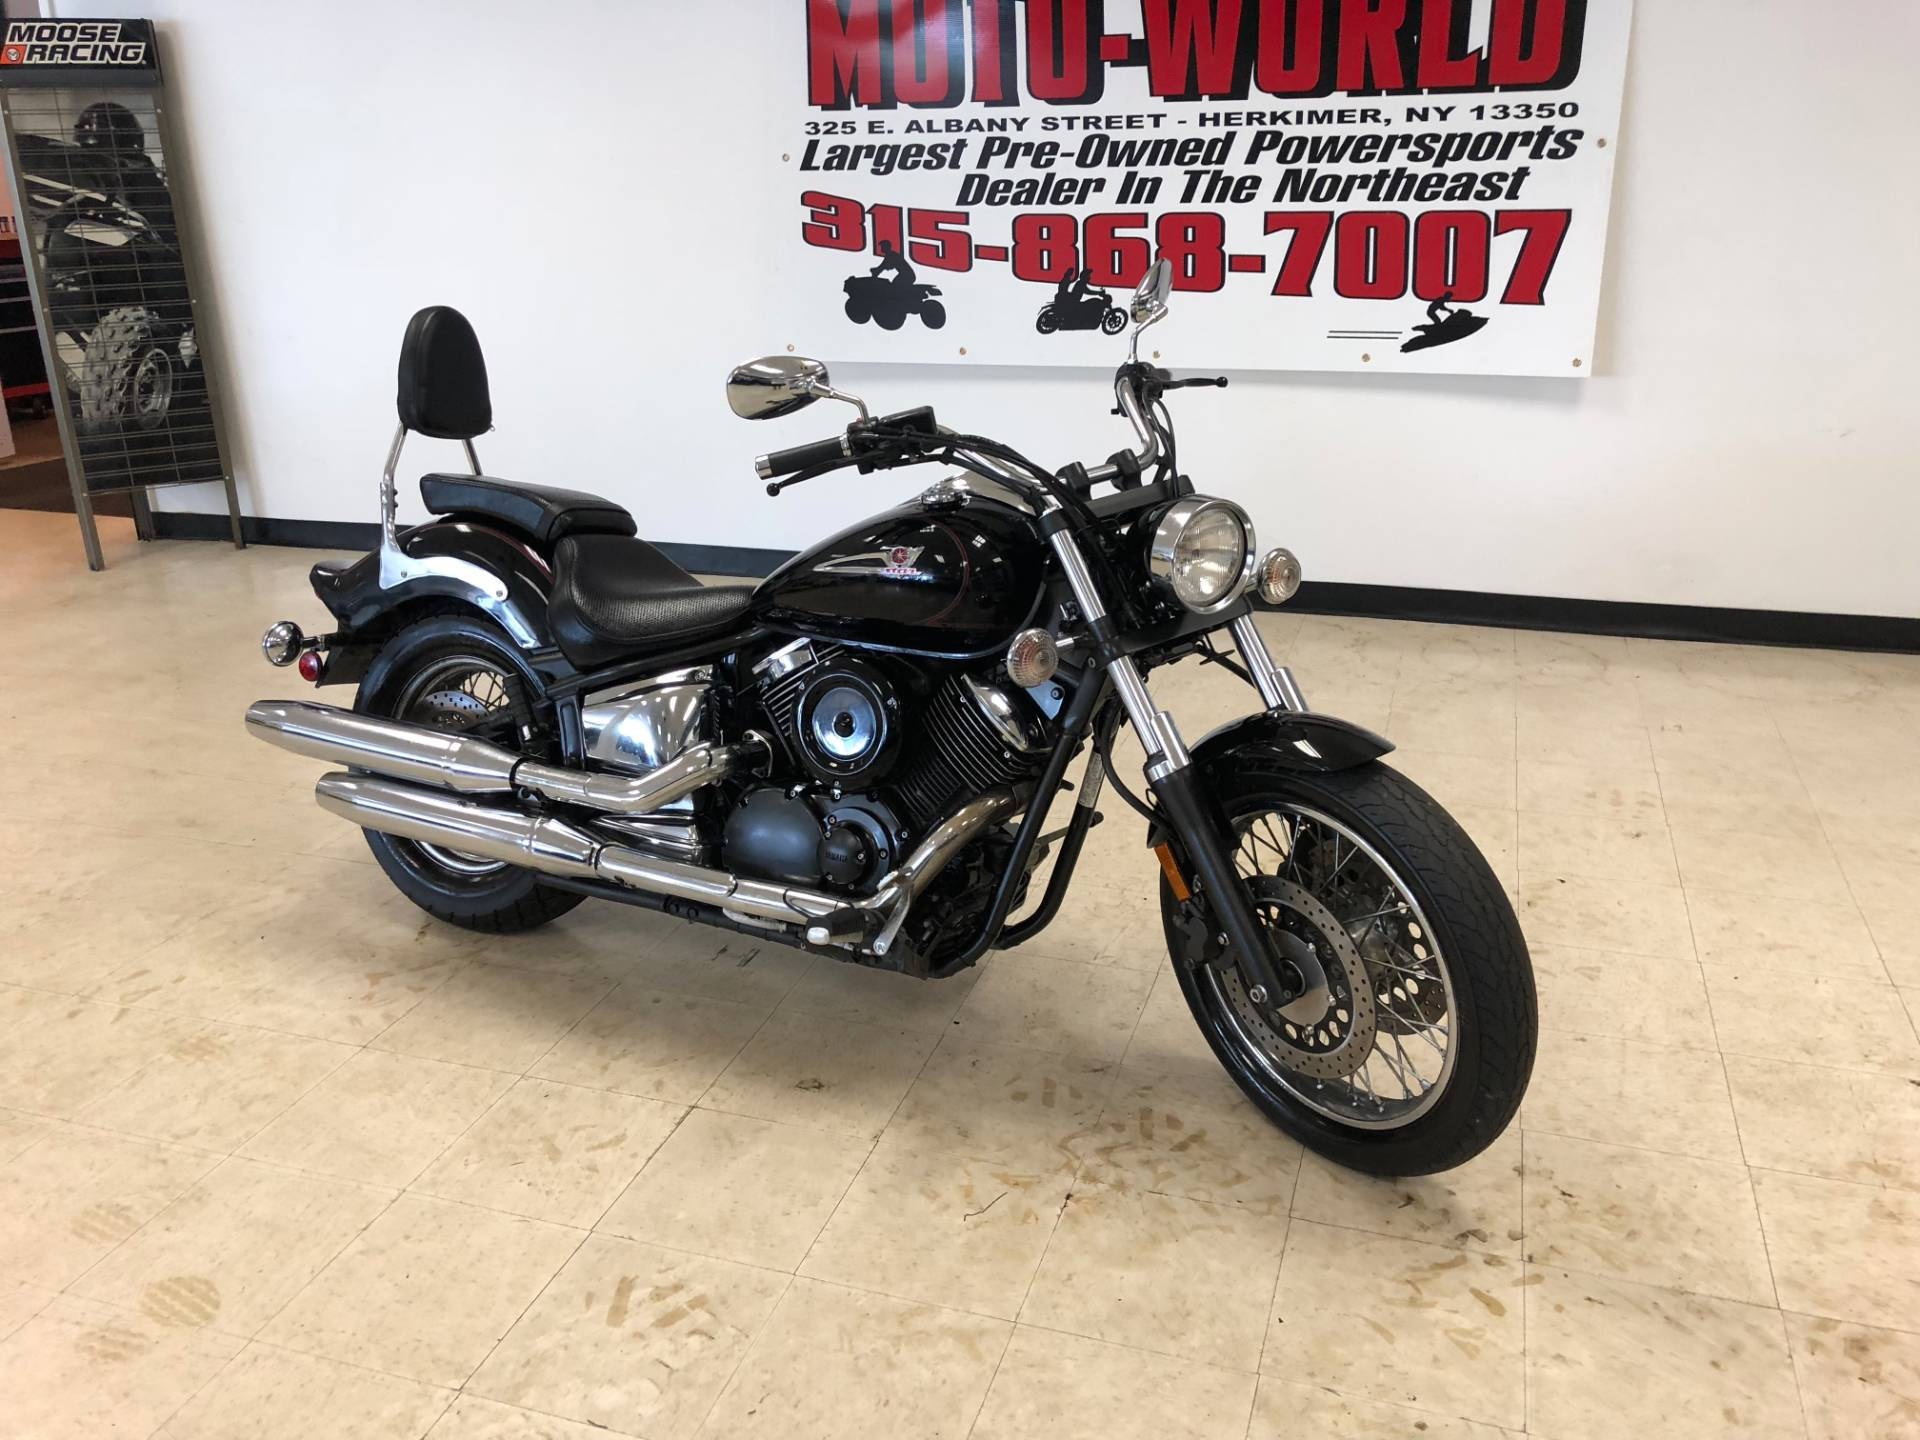 2007 Yamaha V Star® 1100 Silverado® in Herkimer, New York